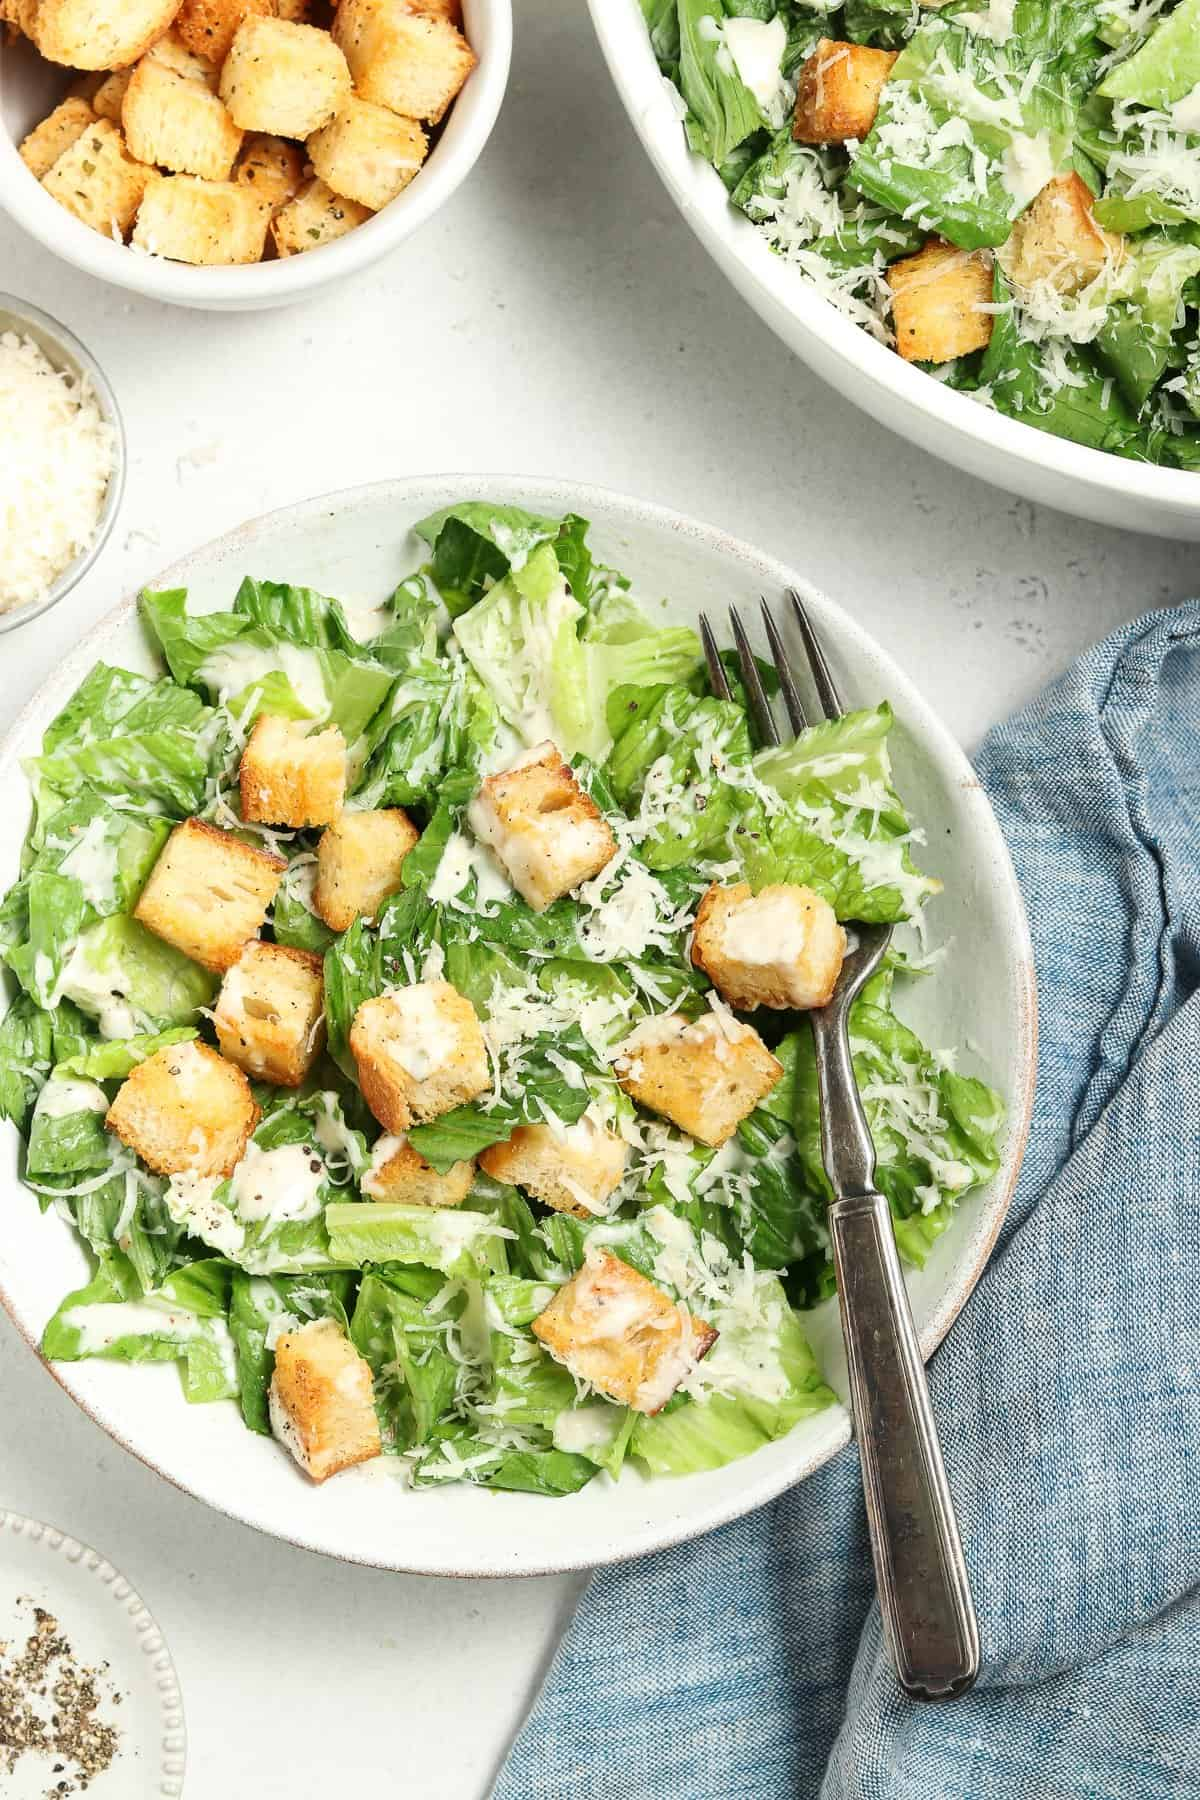 Overhead view of a vegan caesar salad in a white bowl with a blue napkin, pepper and croutons on the side.